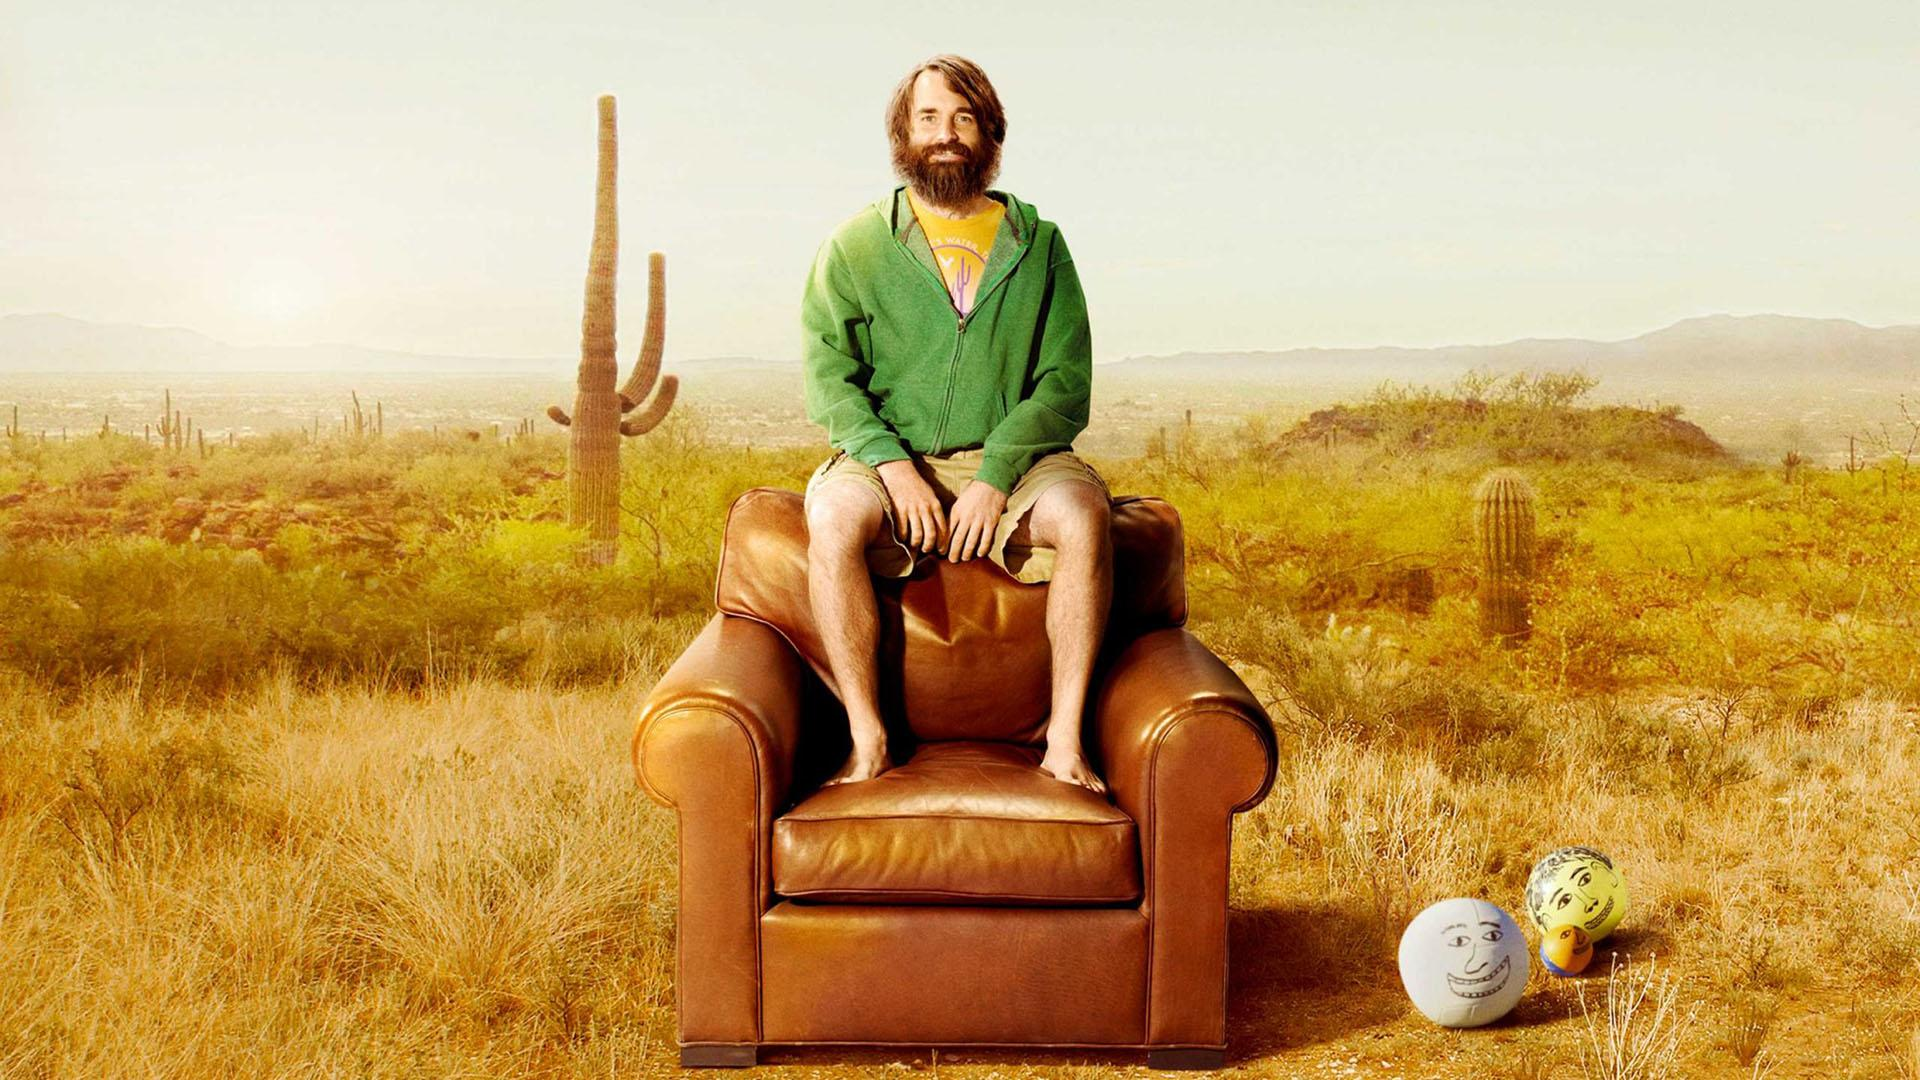 The Last Man On Earth wallpapers HD quality